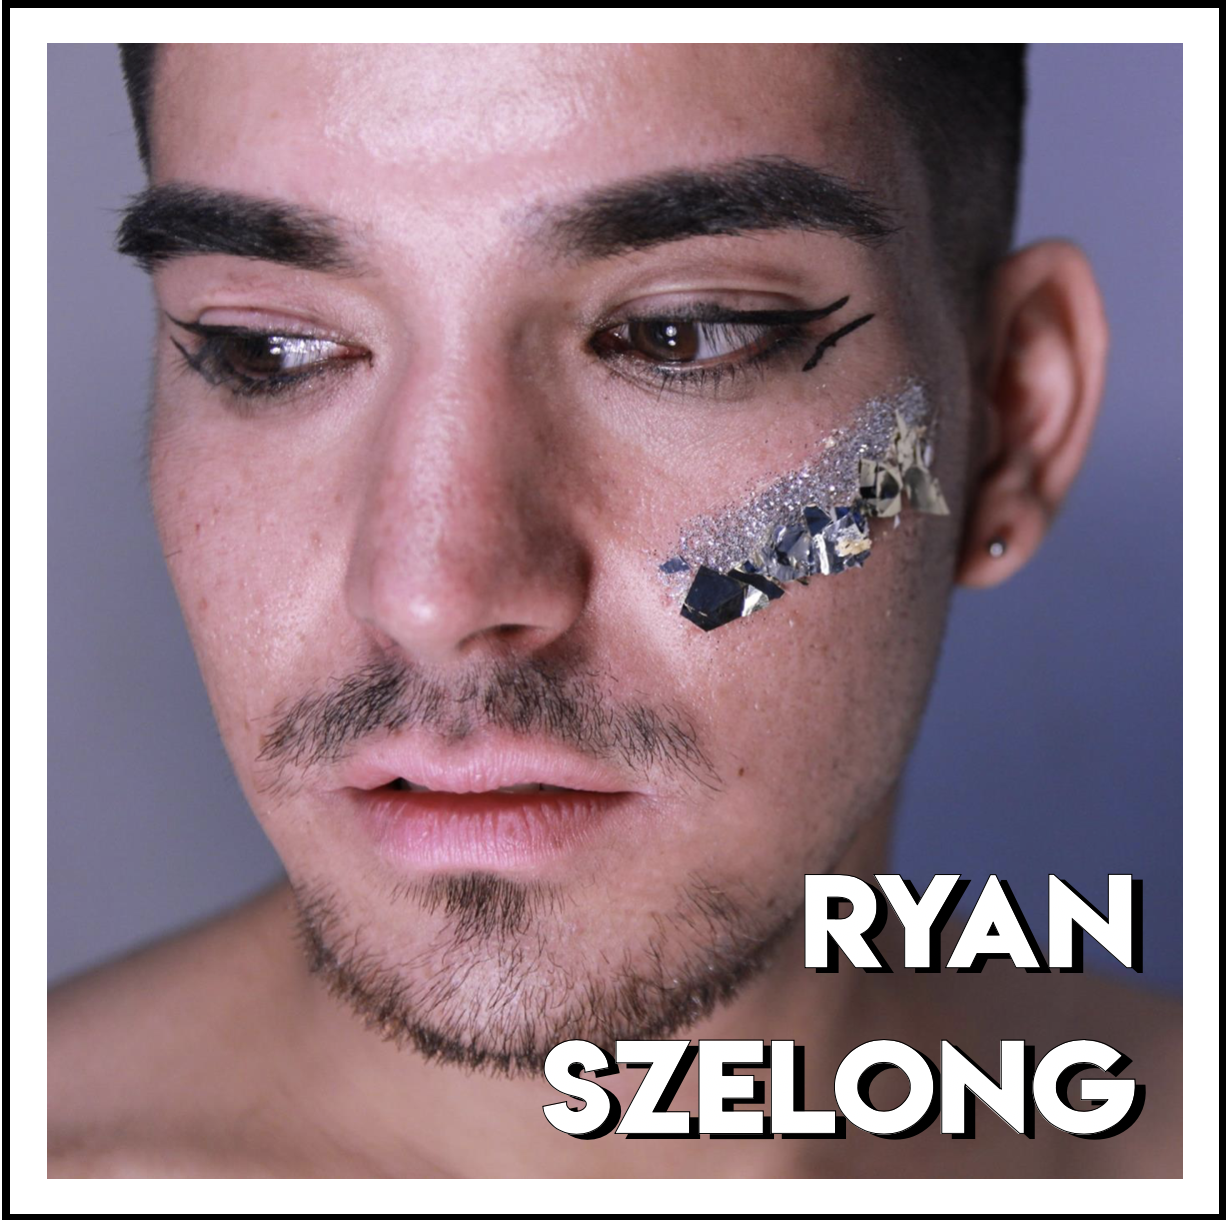 Ryan Szelong